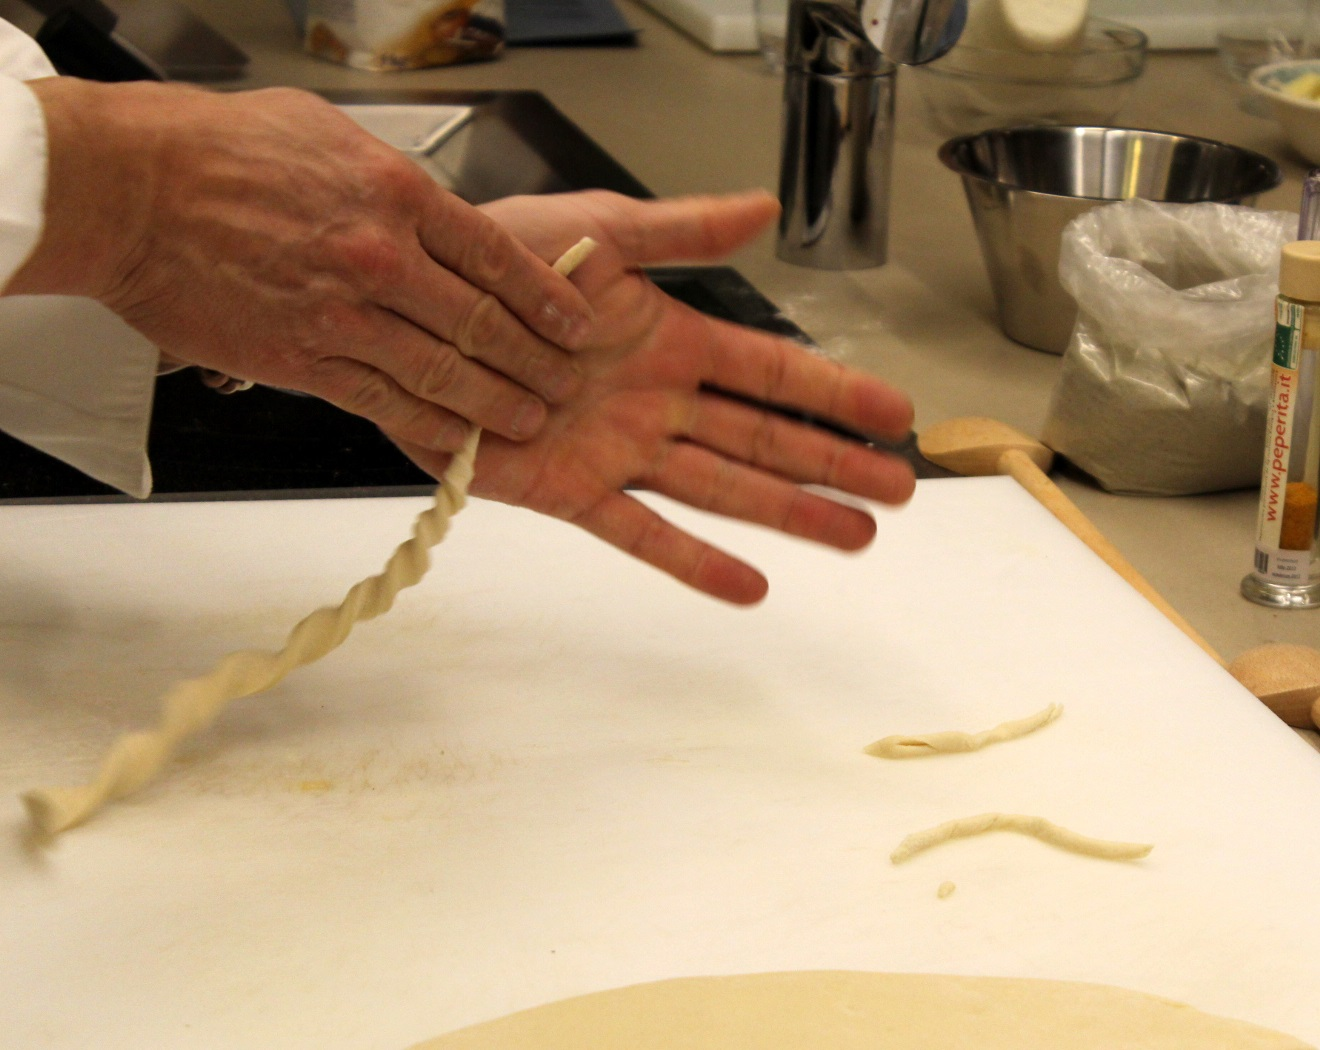 Making strozzapreti